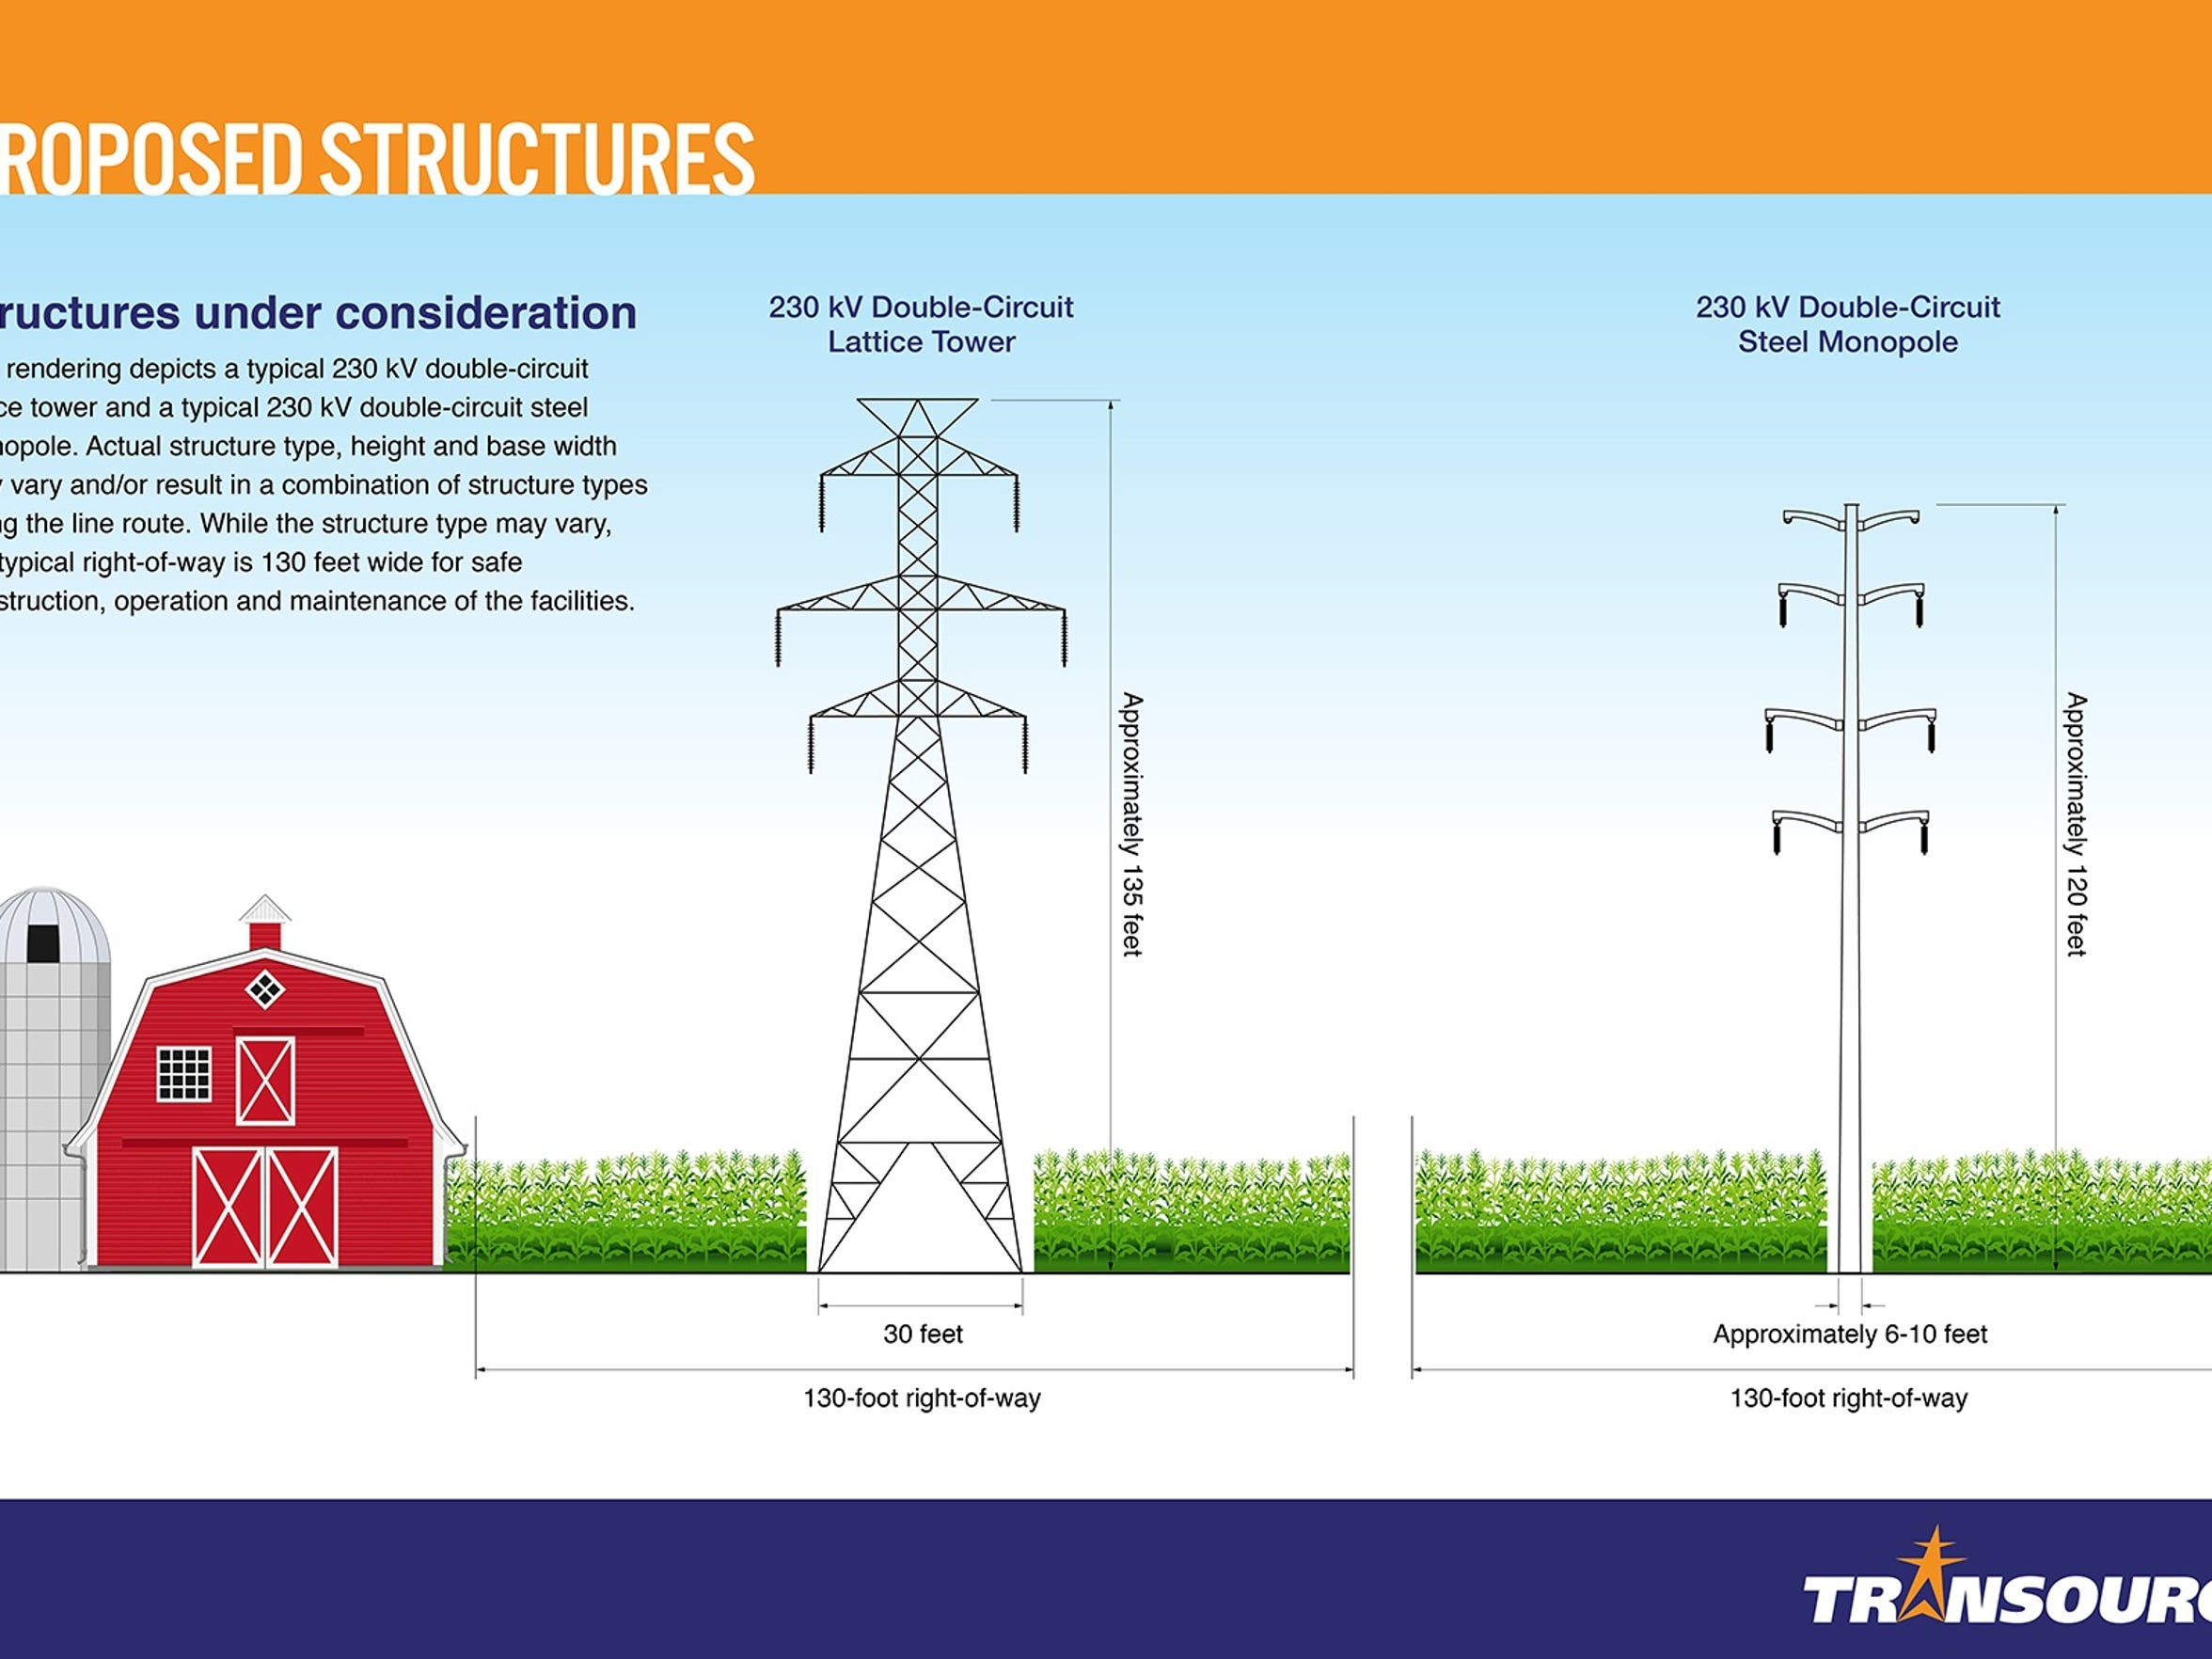 Transource Energy is considering two types of structures